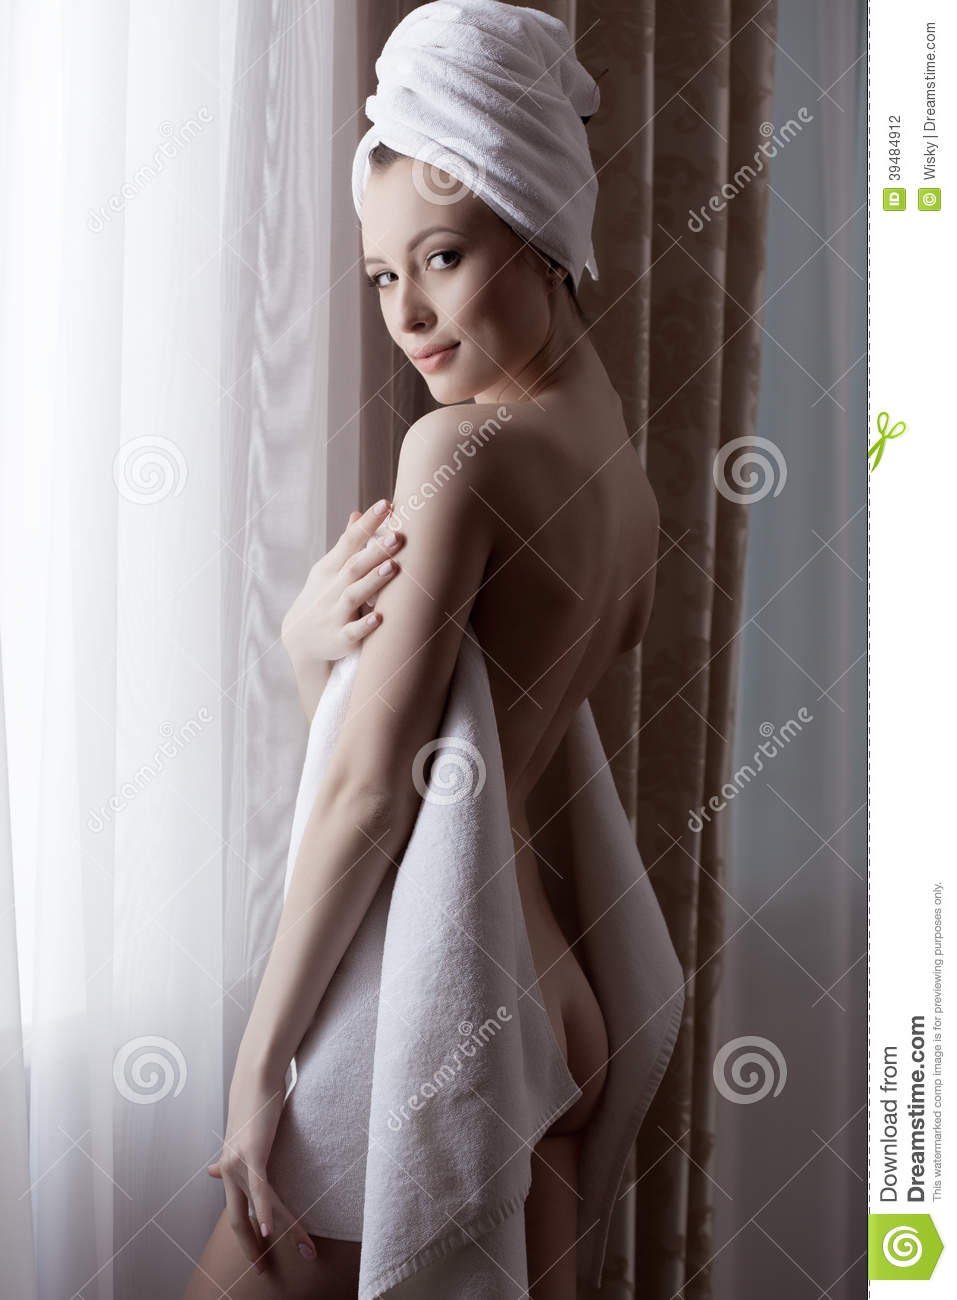 Girl In Towel Got Her Nude